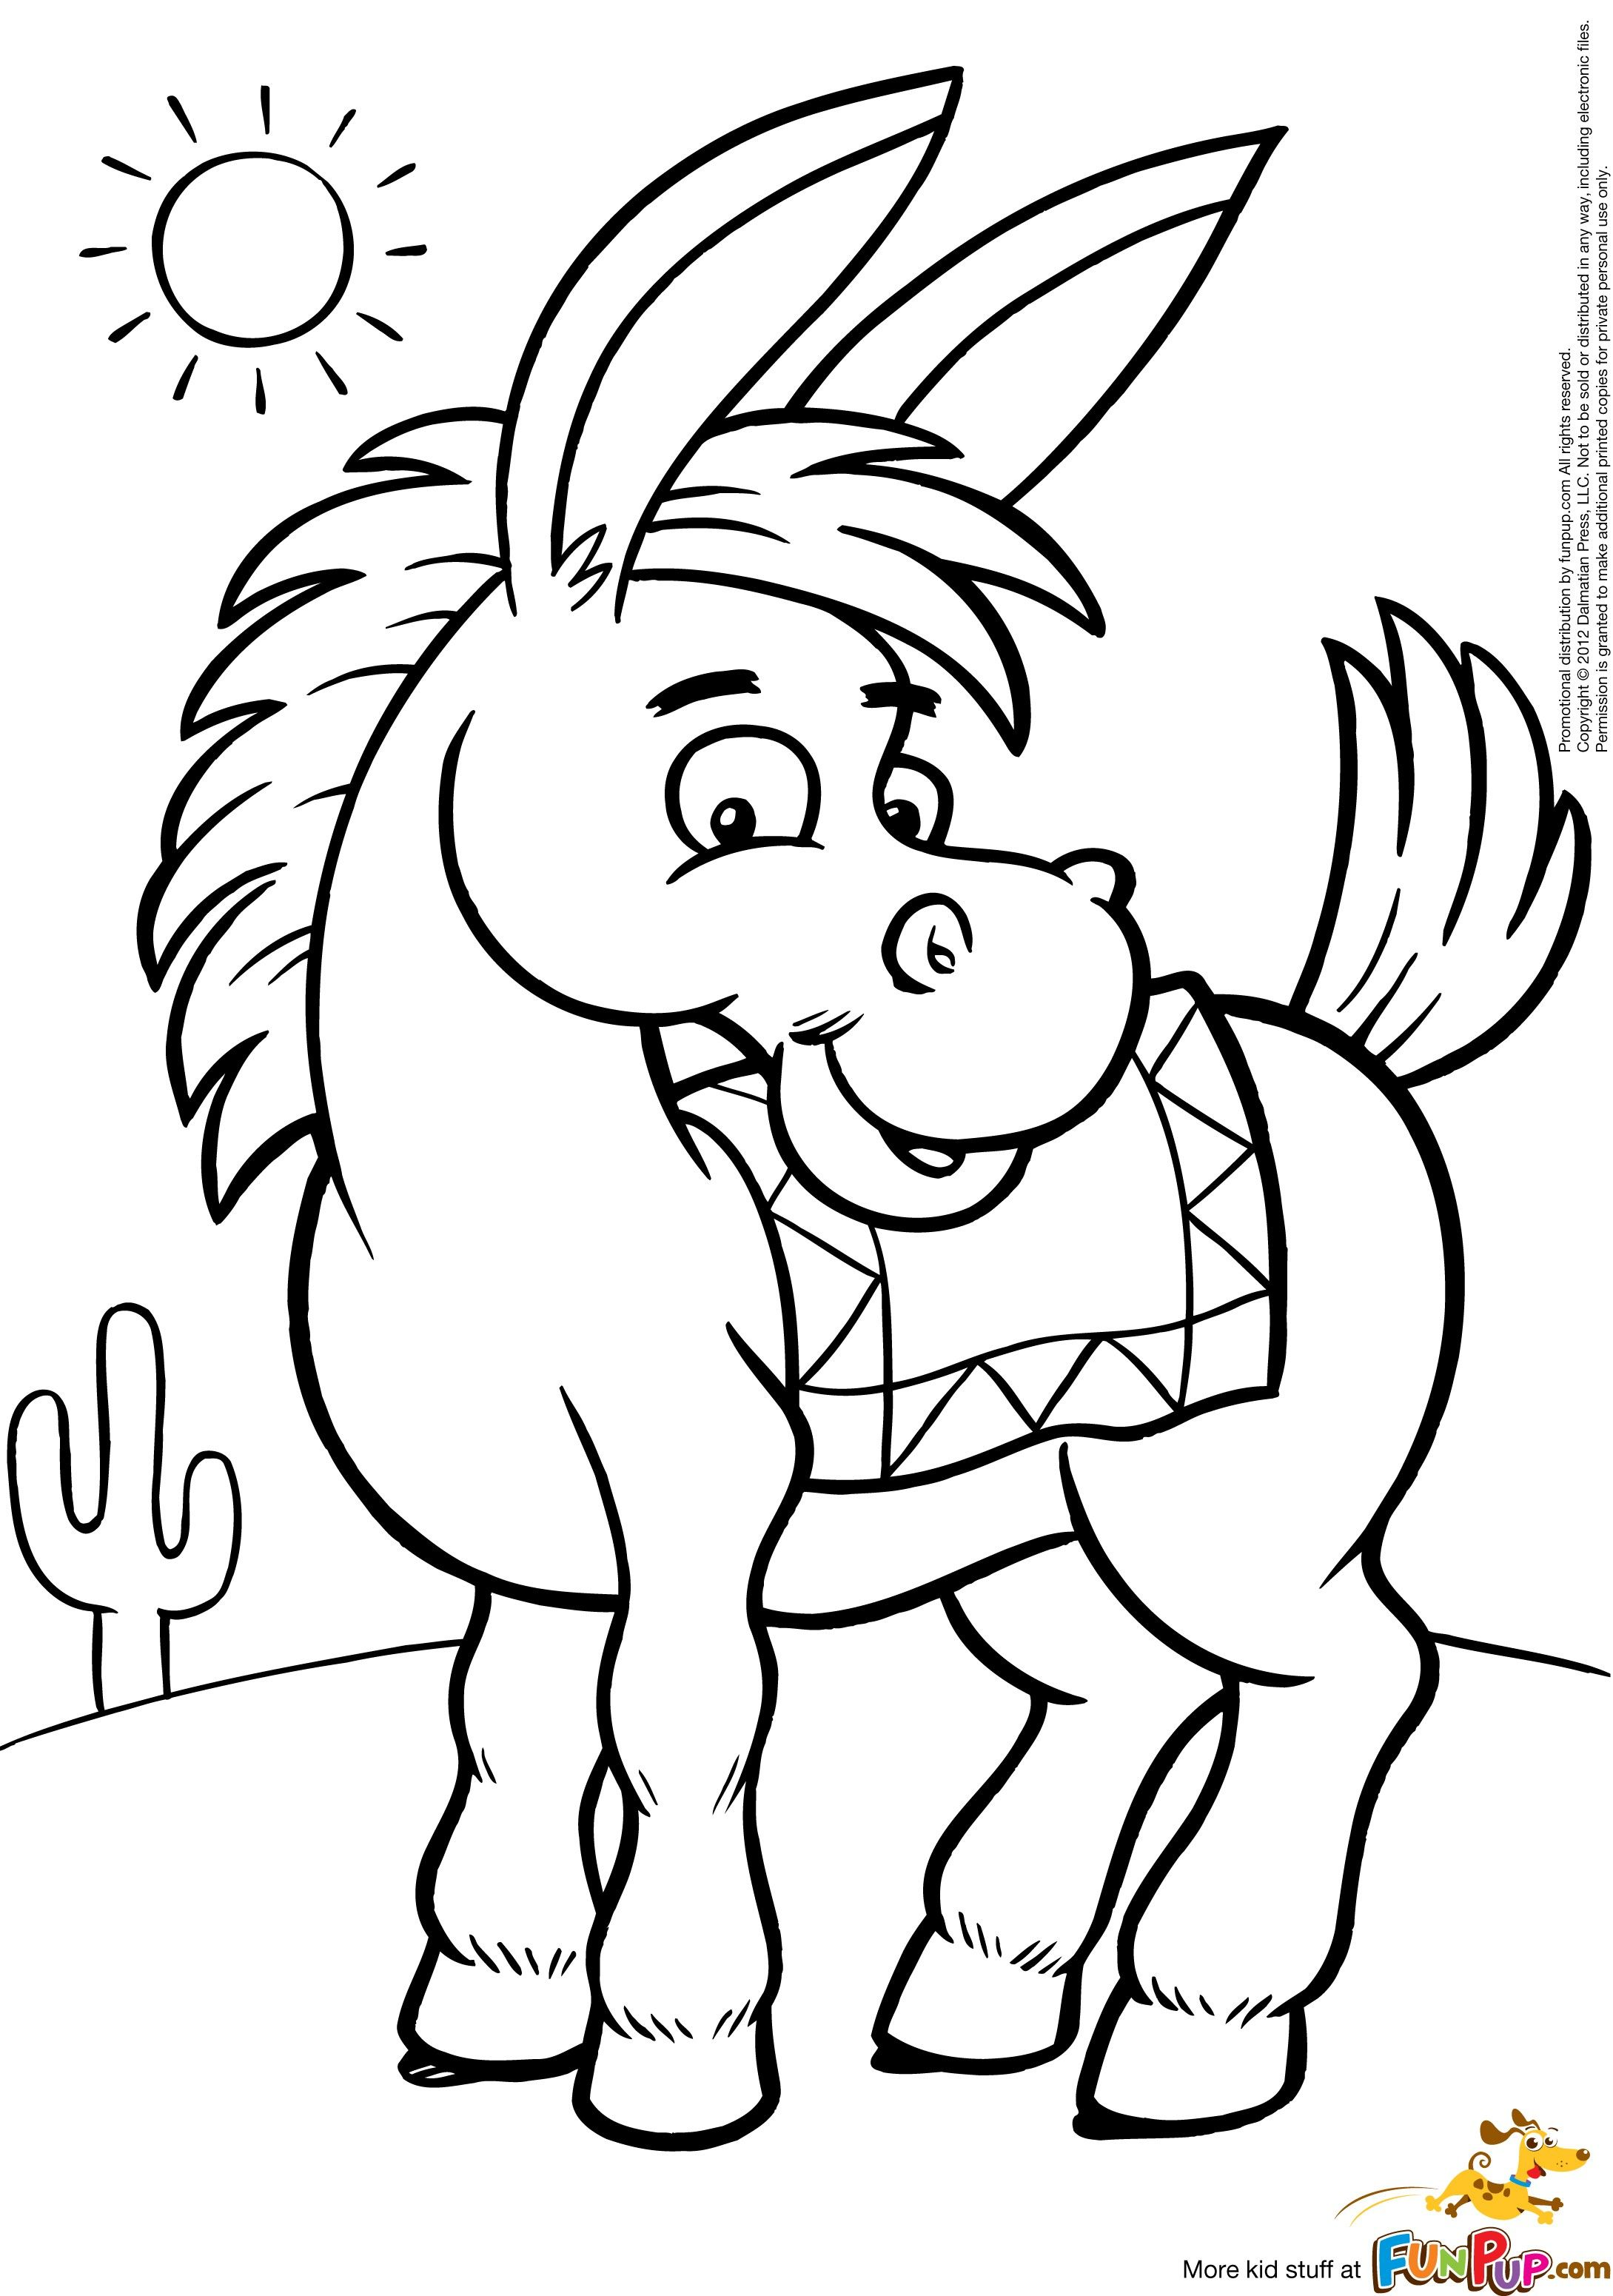 Donkey Coloring Pages Printable Coloring Books